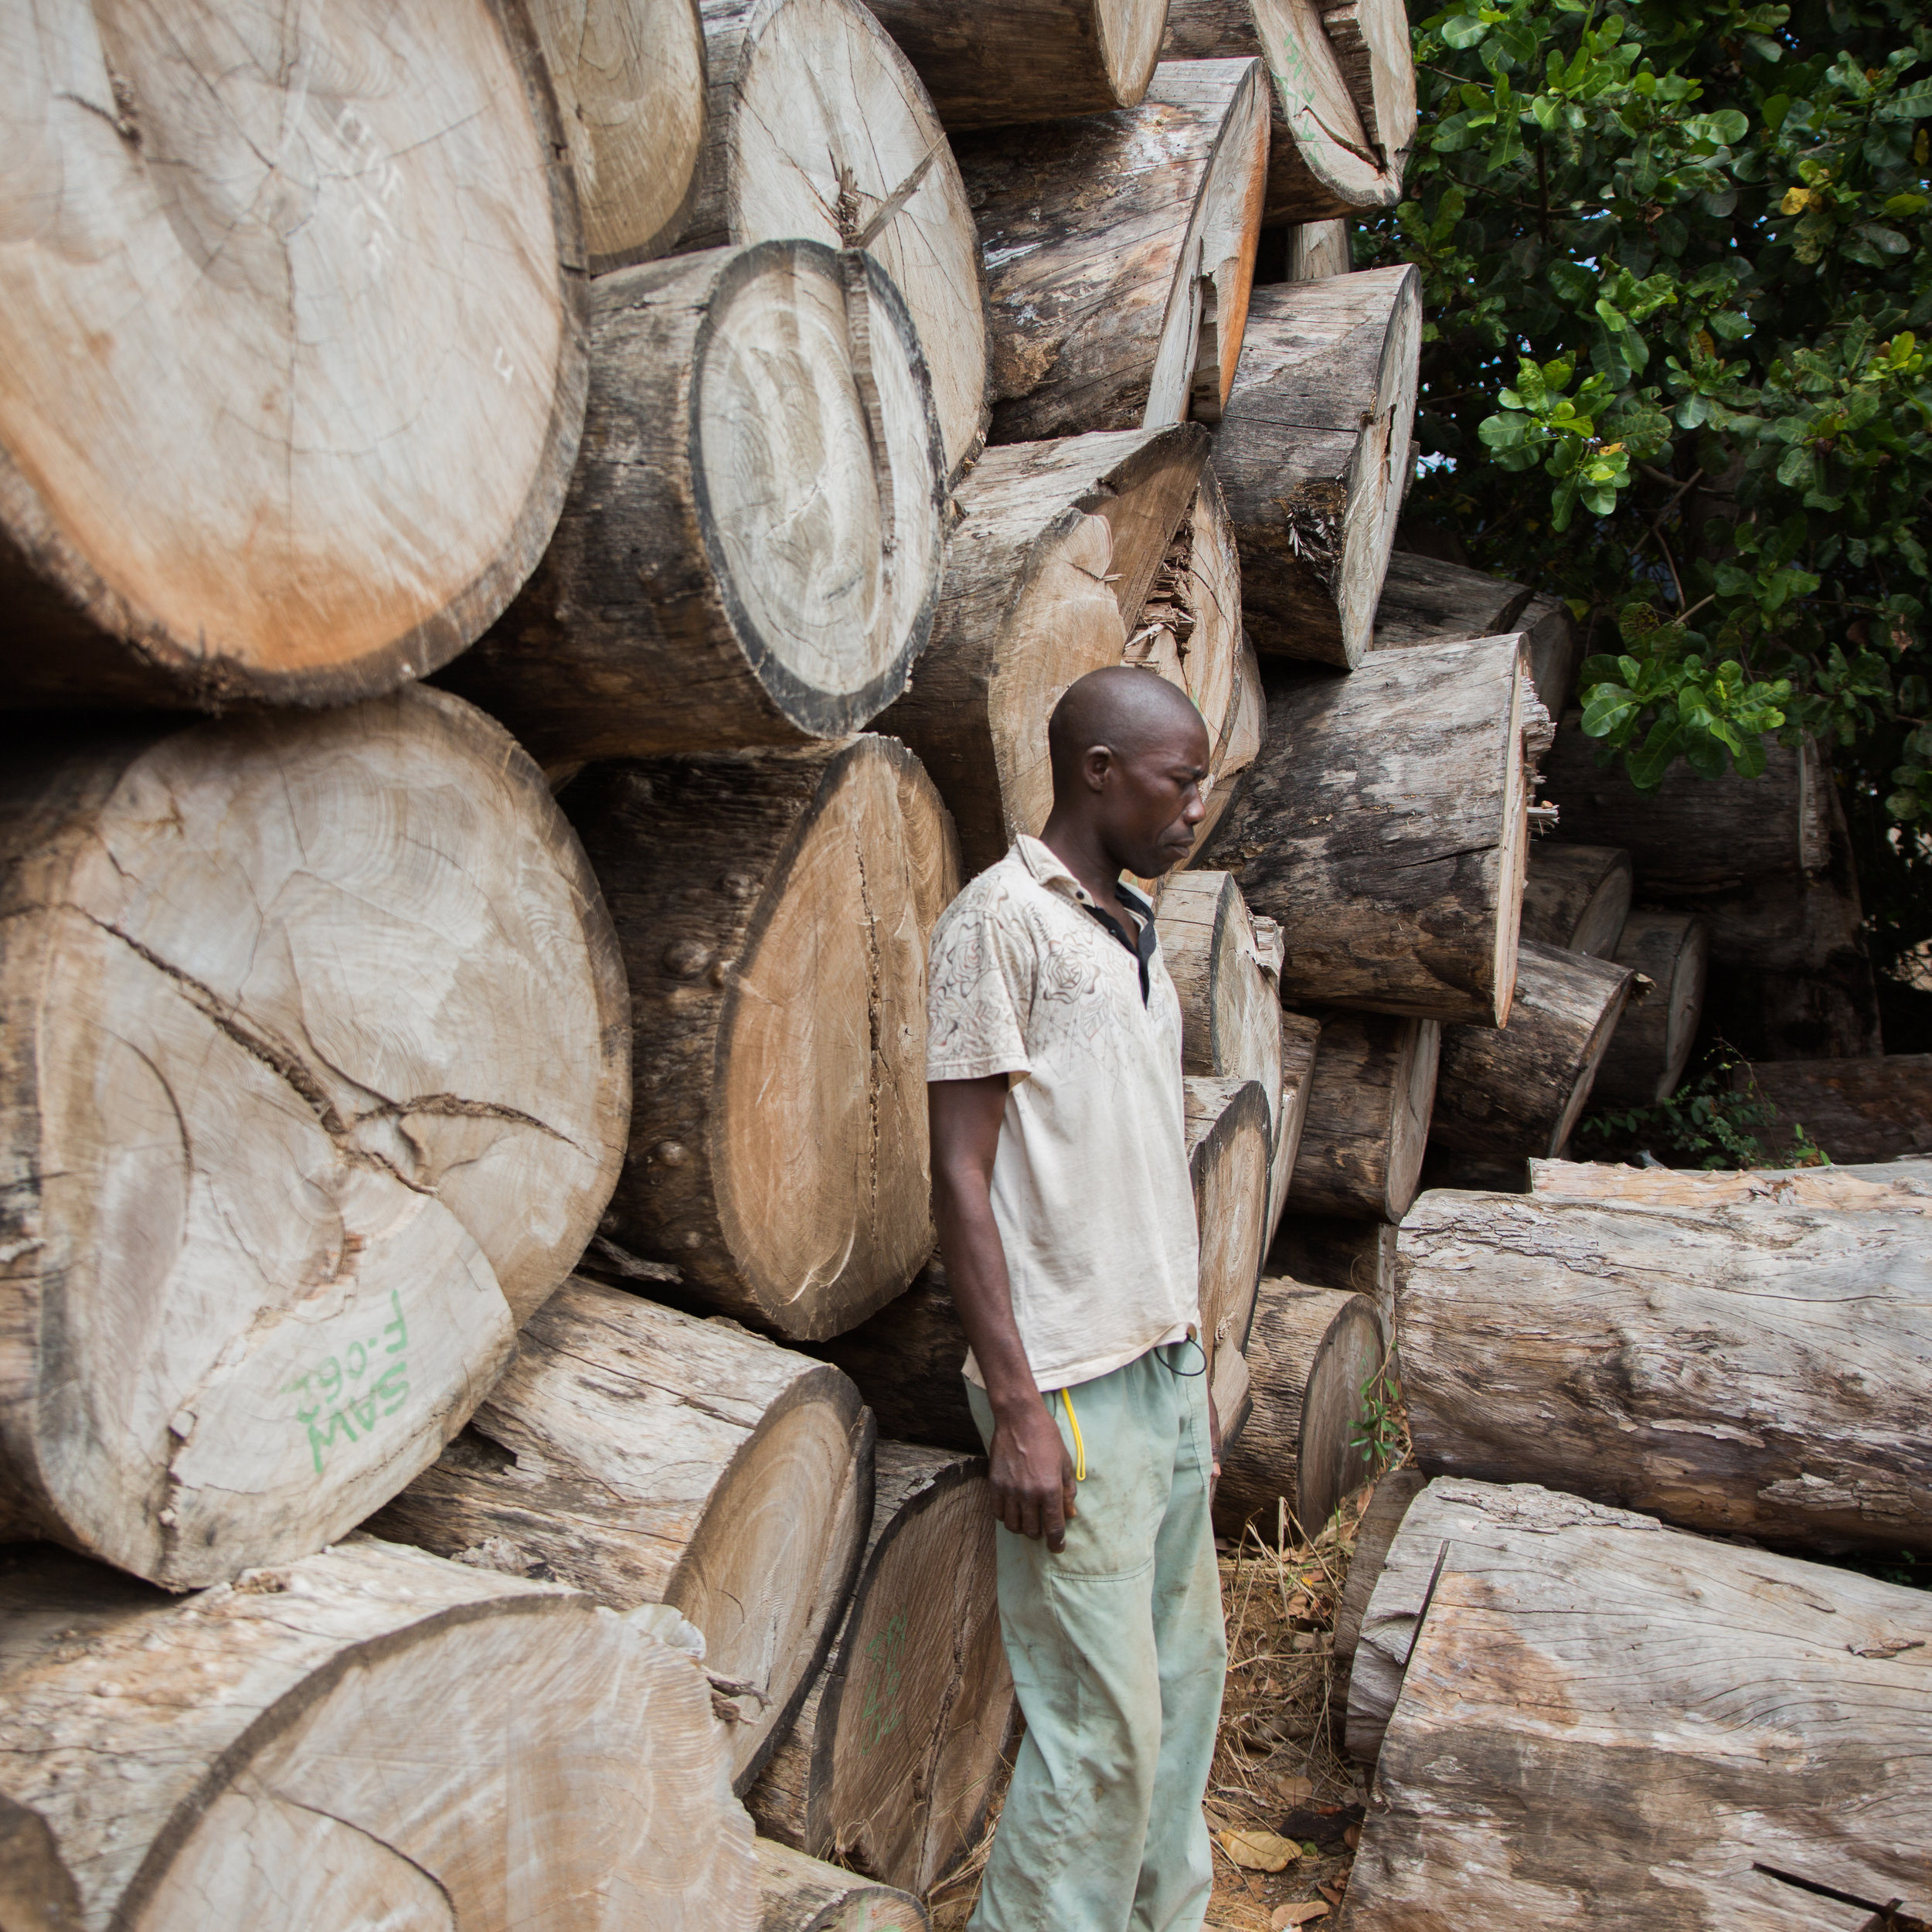 Chanfuta Timber    A variety of Mozambican hardwood timber has been locally sourced from our timber concession including Umbila, Jambire, Pau Preto and Chanfuta  [  Afzelia Quansensis] , pictured. 90% of the timber logged in Mozambique is exported to China, however the industry has come under increasing pressure due to illegal and undocumented groups exporting timber to the detriment of the country. Our sustainable approach to the use of timber mandates that for every tree used in our construction, another ten trees are planted.